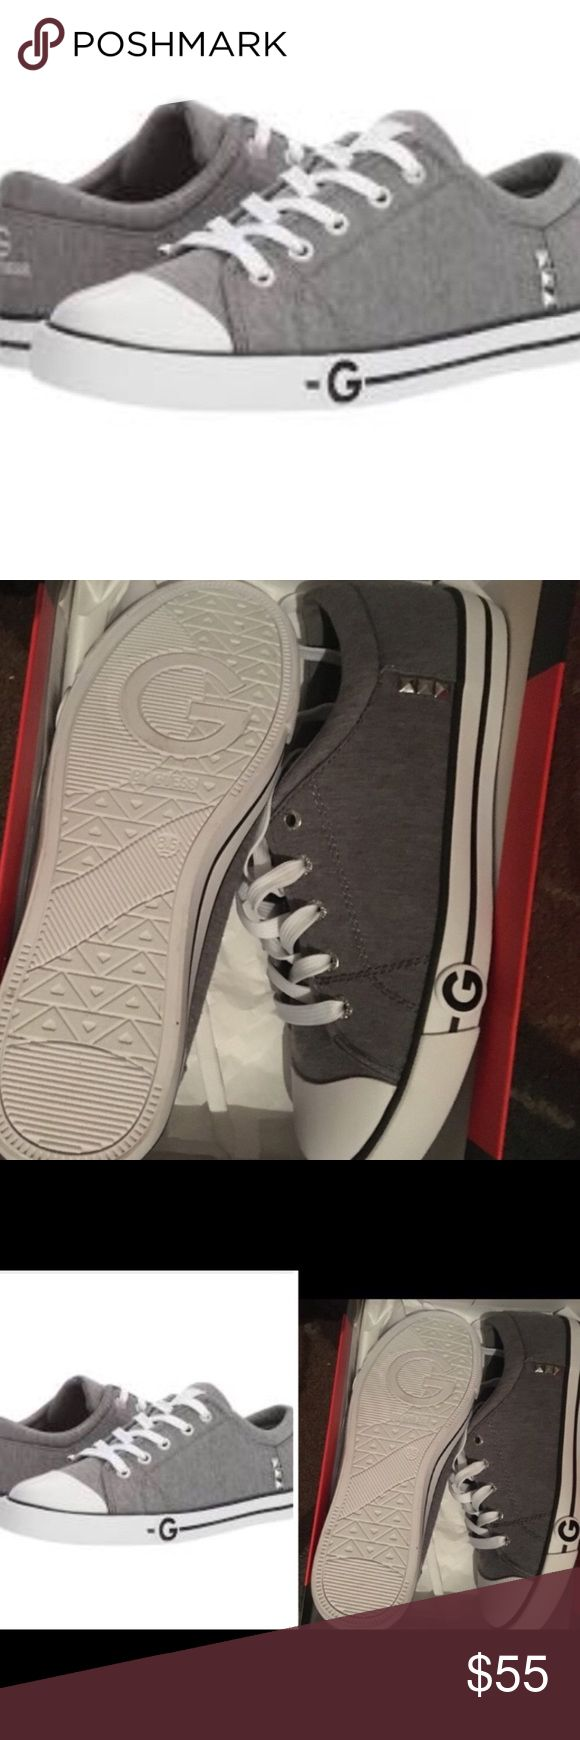 G by Guess sneakers G by guess sneakers  gray fabric NWT  8.5 needs a new home G by Guess Shoes Sneakers